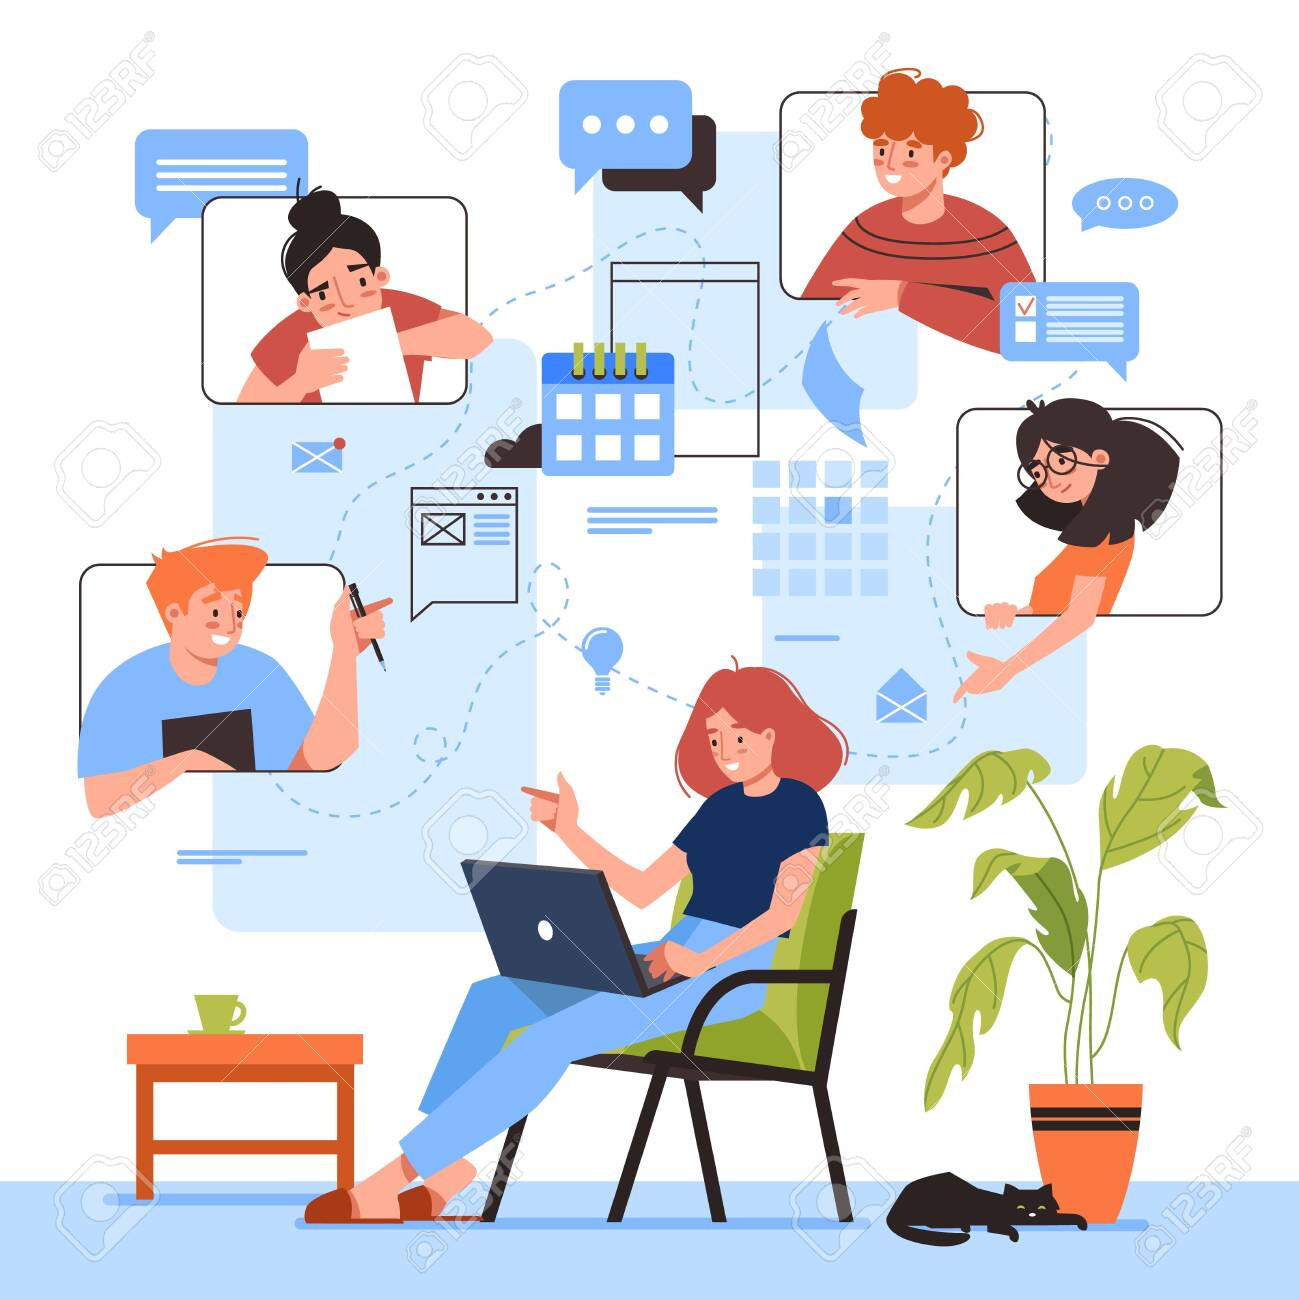 Online Meeting Vector Illustration Design Woman With Laptop Royalty Free Cliparts Vectors And Stock Illustration Image 152610372